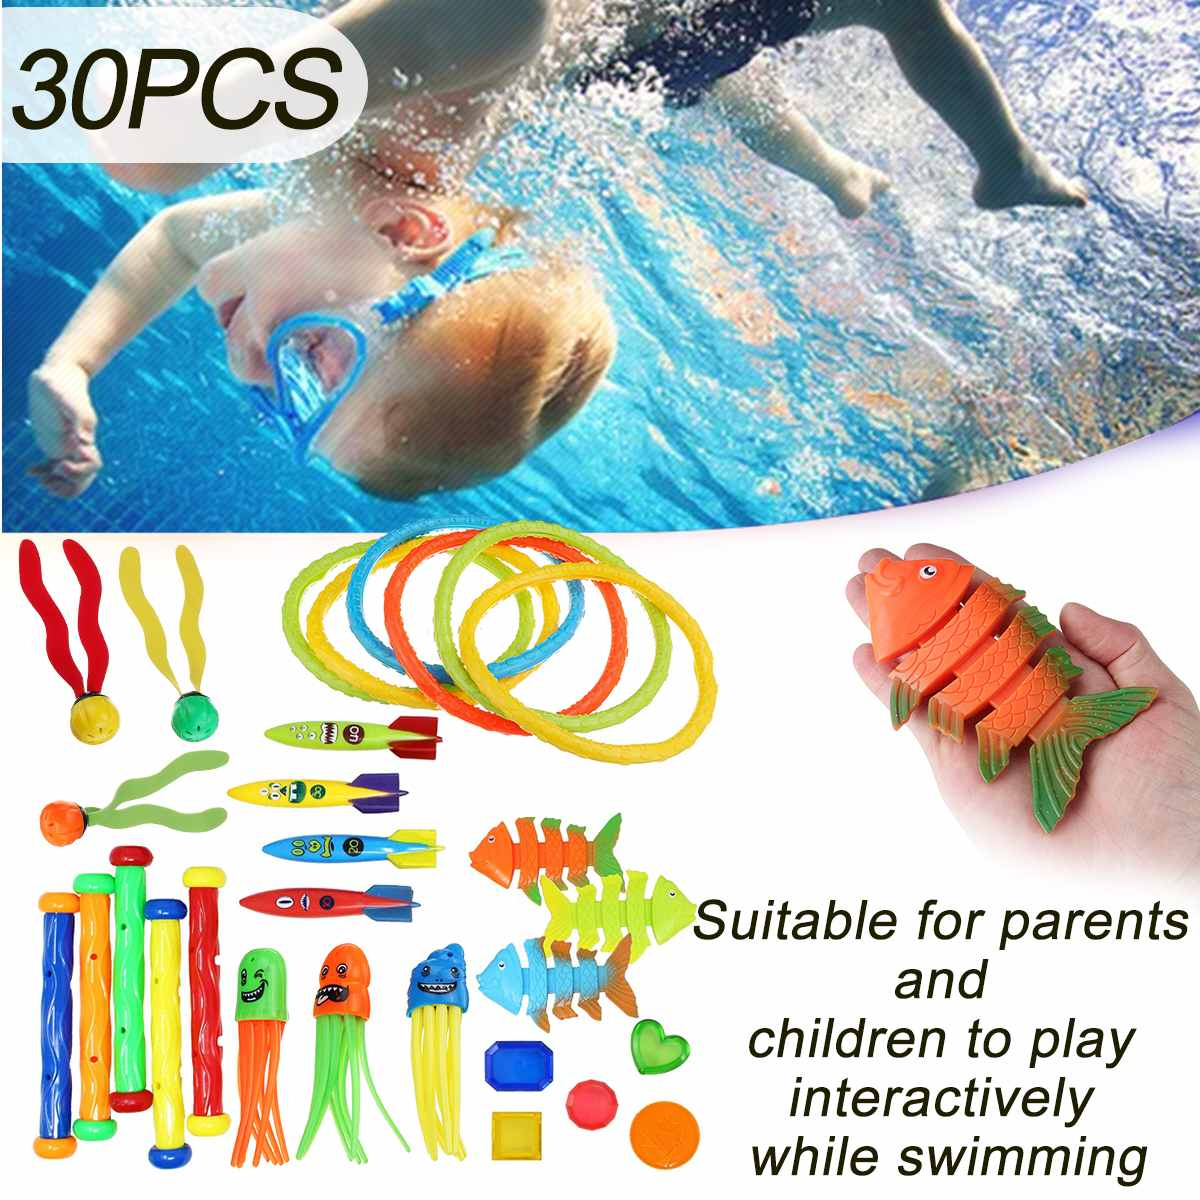 30Pcs Summer Playing Swimming Pool Throwing Diving Toys Underwater Rings Diving Circle Set Multicolor Game Beach Toy